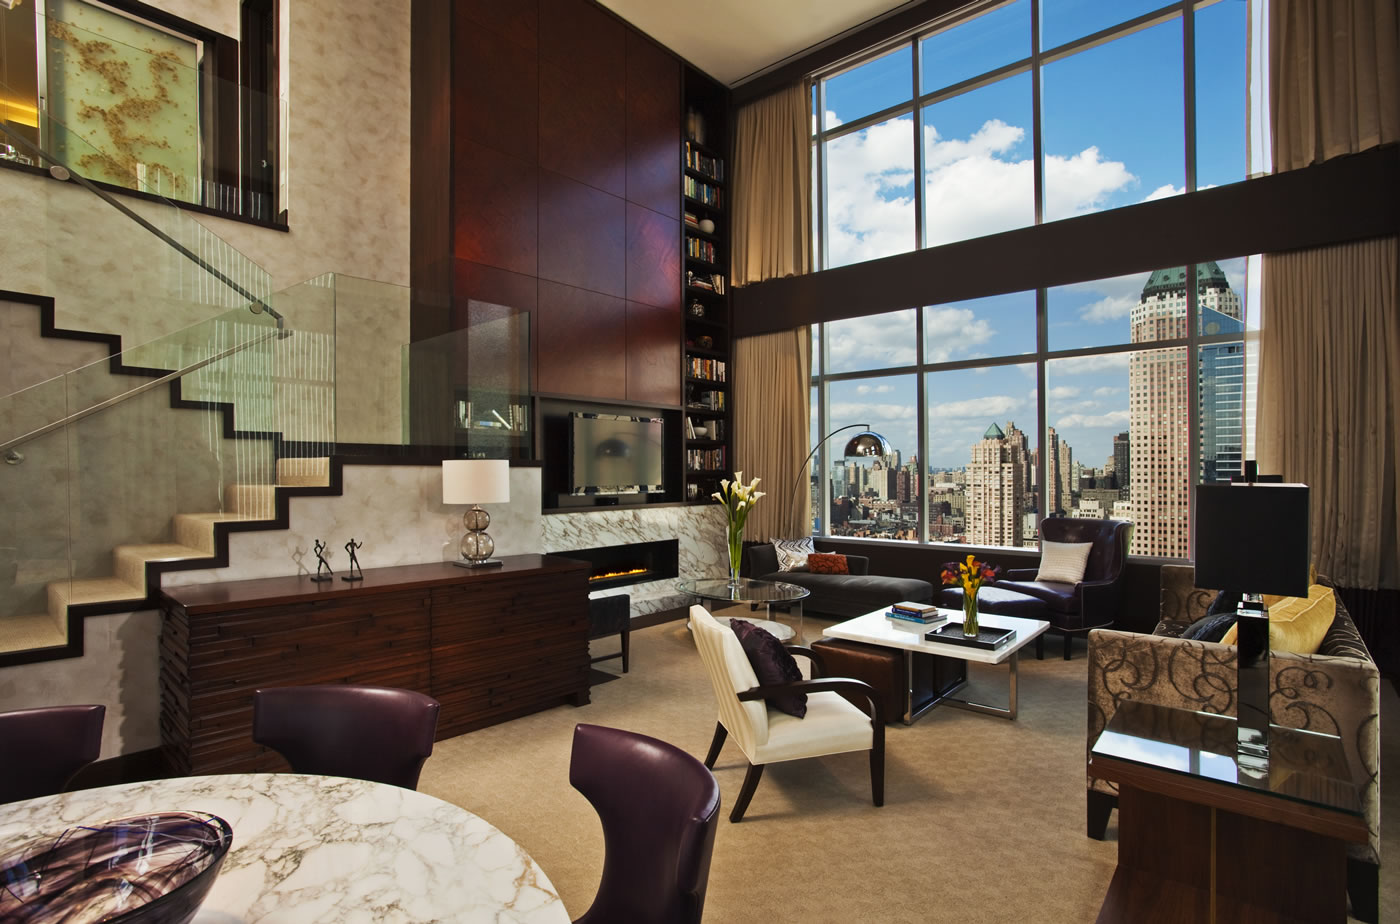 hotel with kitchen new york pool table combo in a mood to splurge here are the 7 most decadent suites